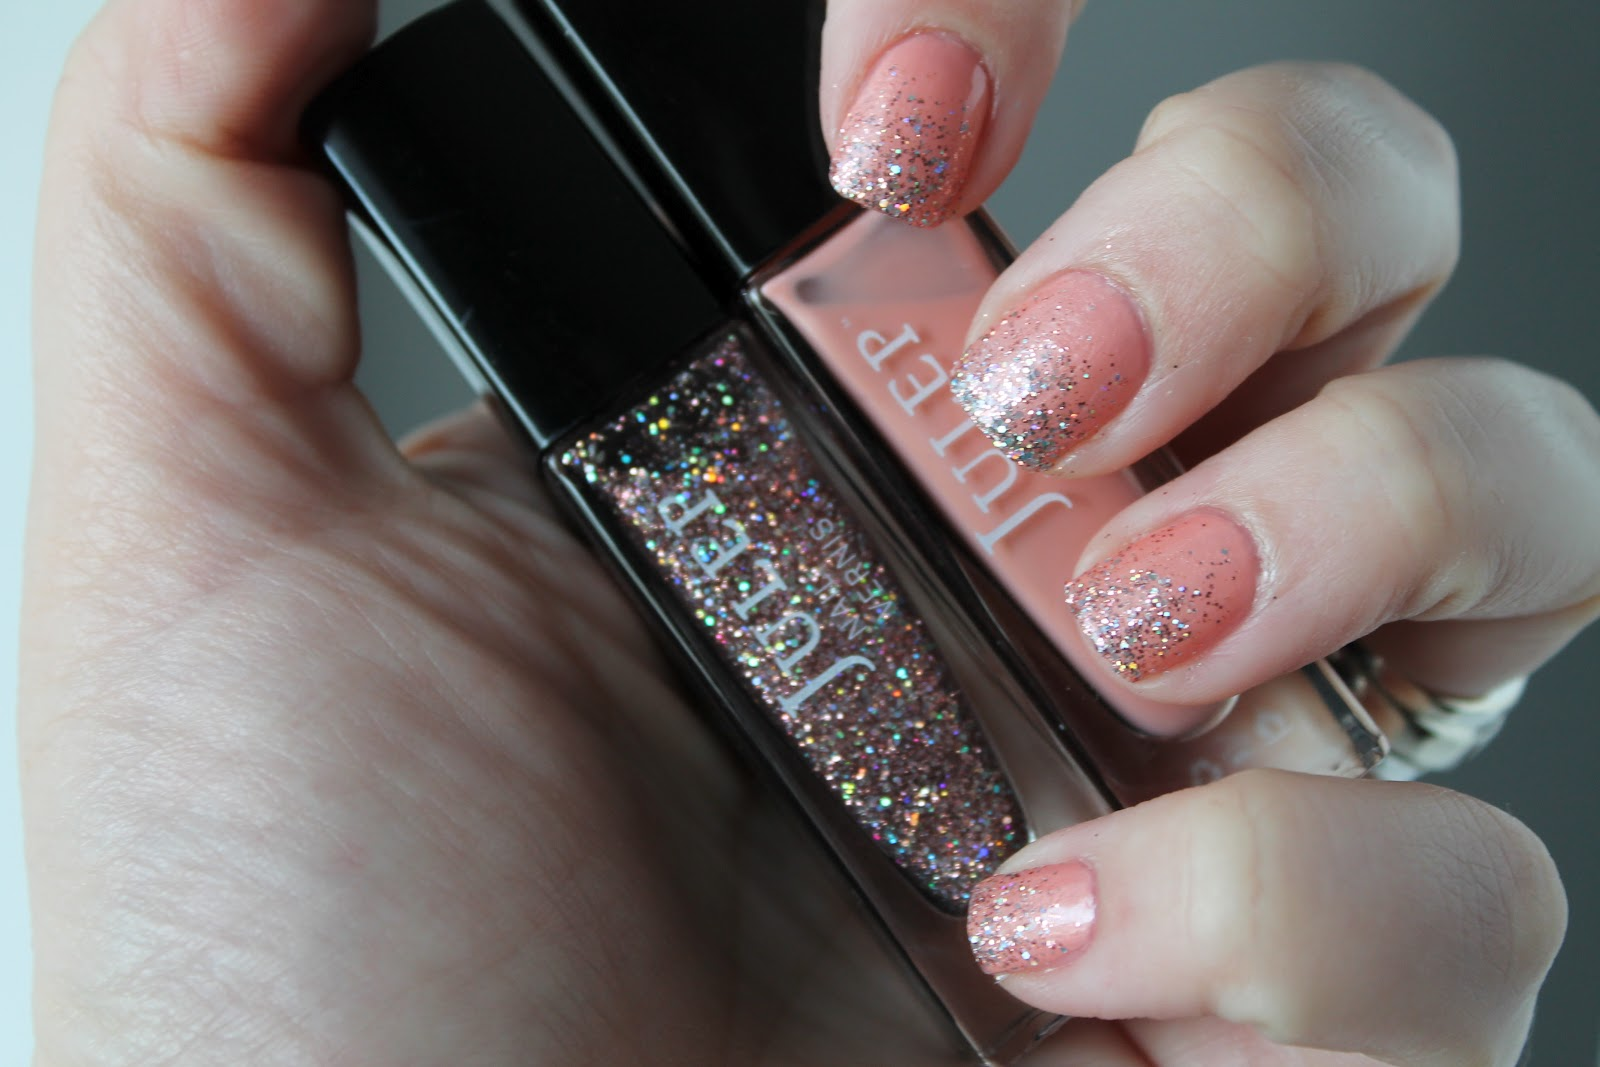 ManicureMonday: July Julep Maven - At the Pink of Perfection